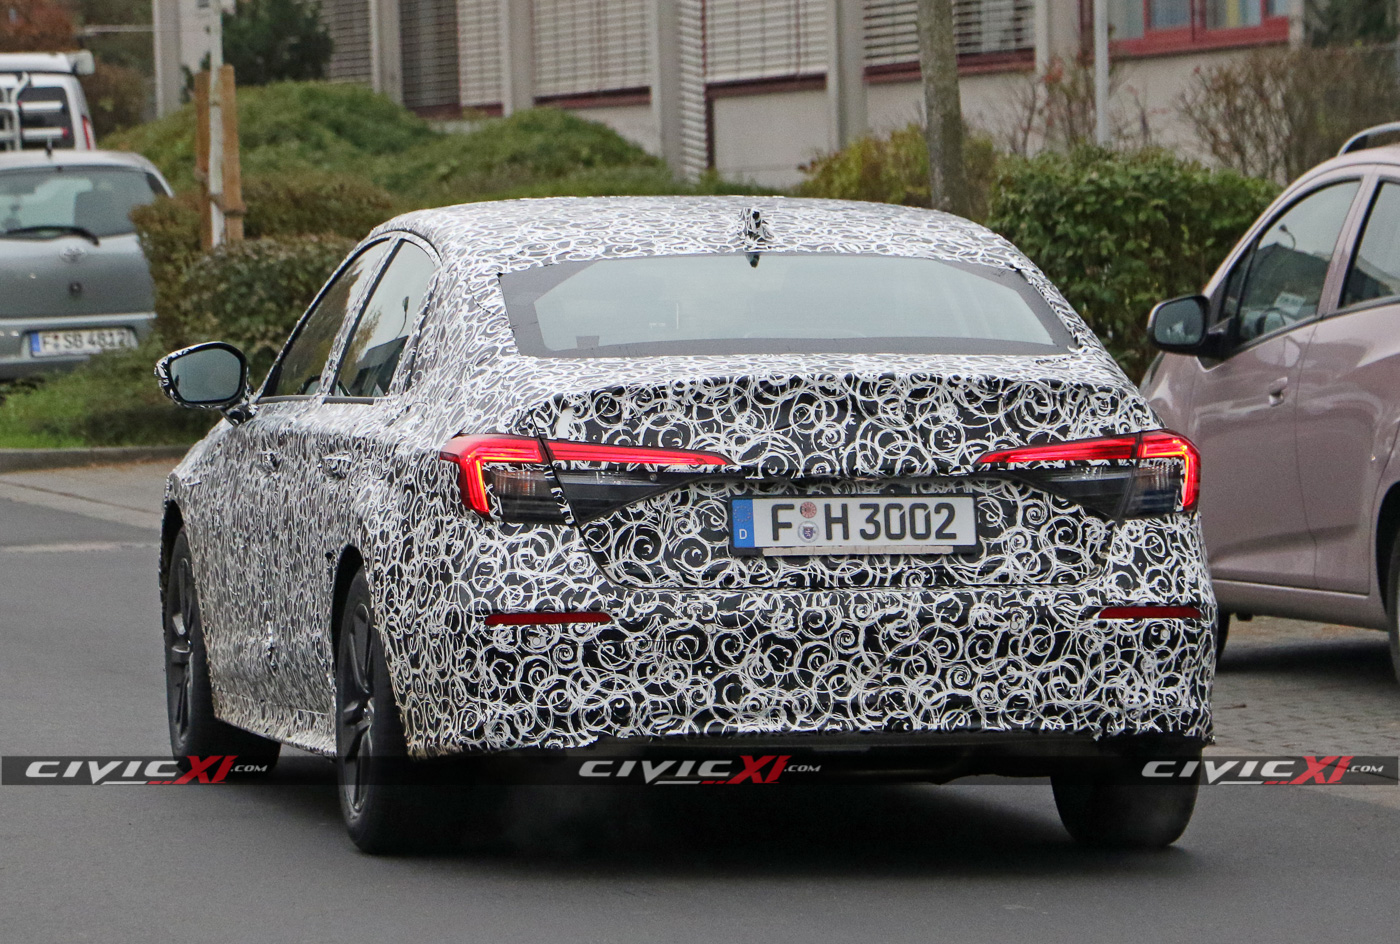 2022-Civic-Sedan-11th-Generation-Spied-Testing-Germany-14.jpg